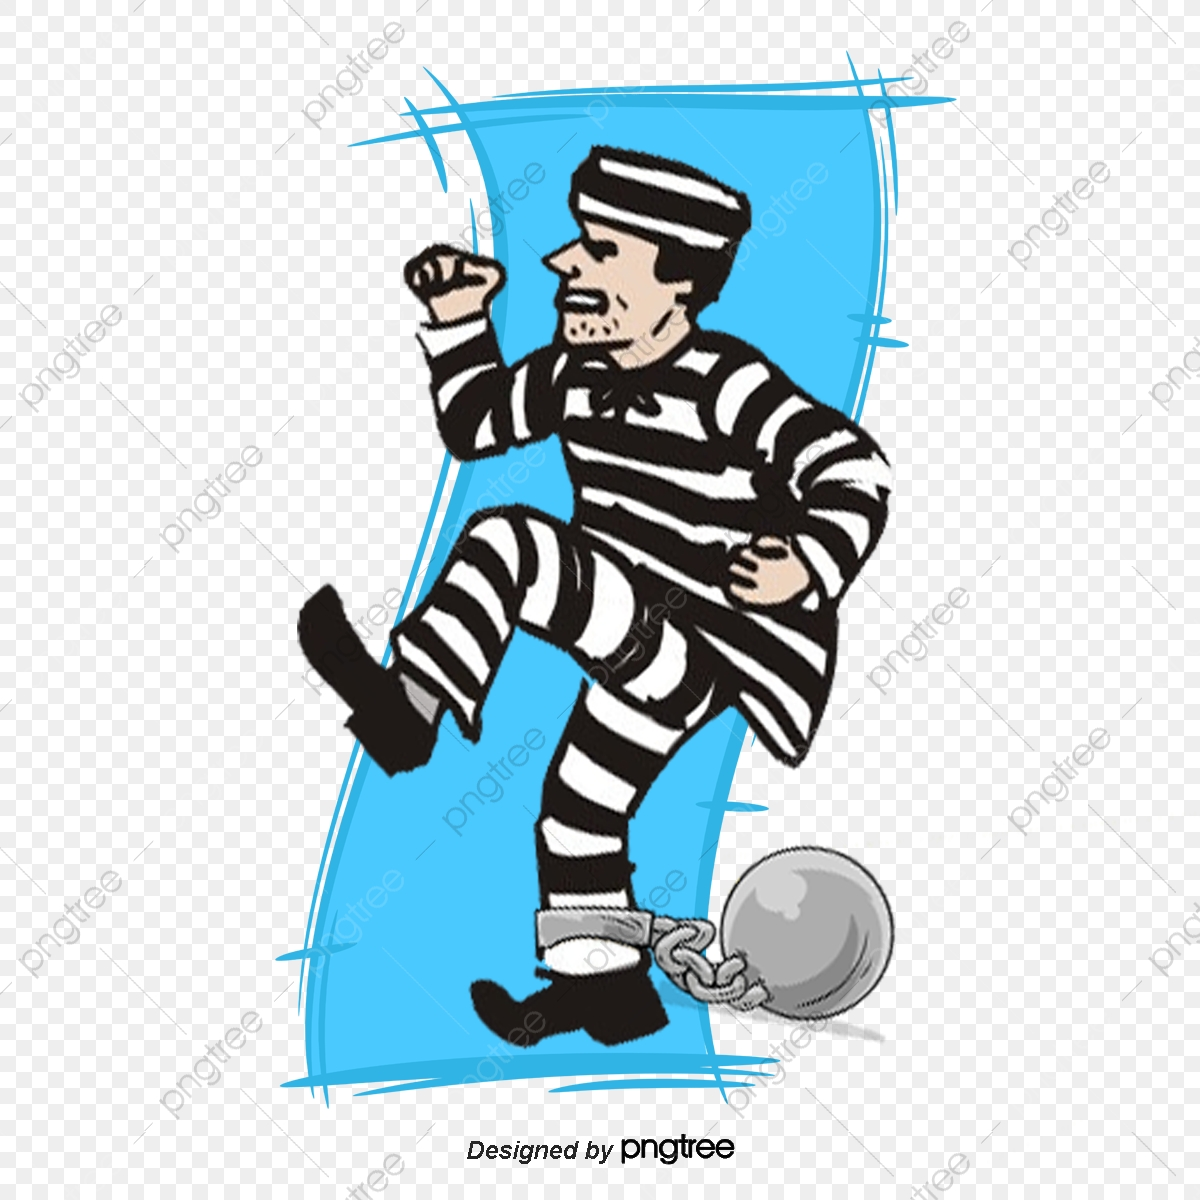 Vector Characters Prison, People Prison, Prisoner, Criminal PNG and